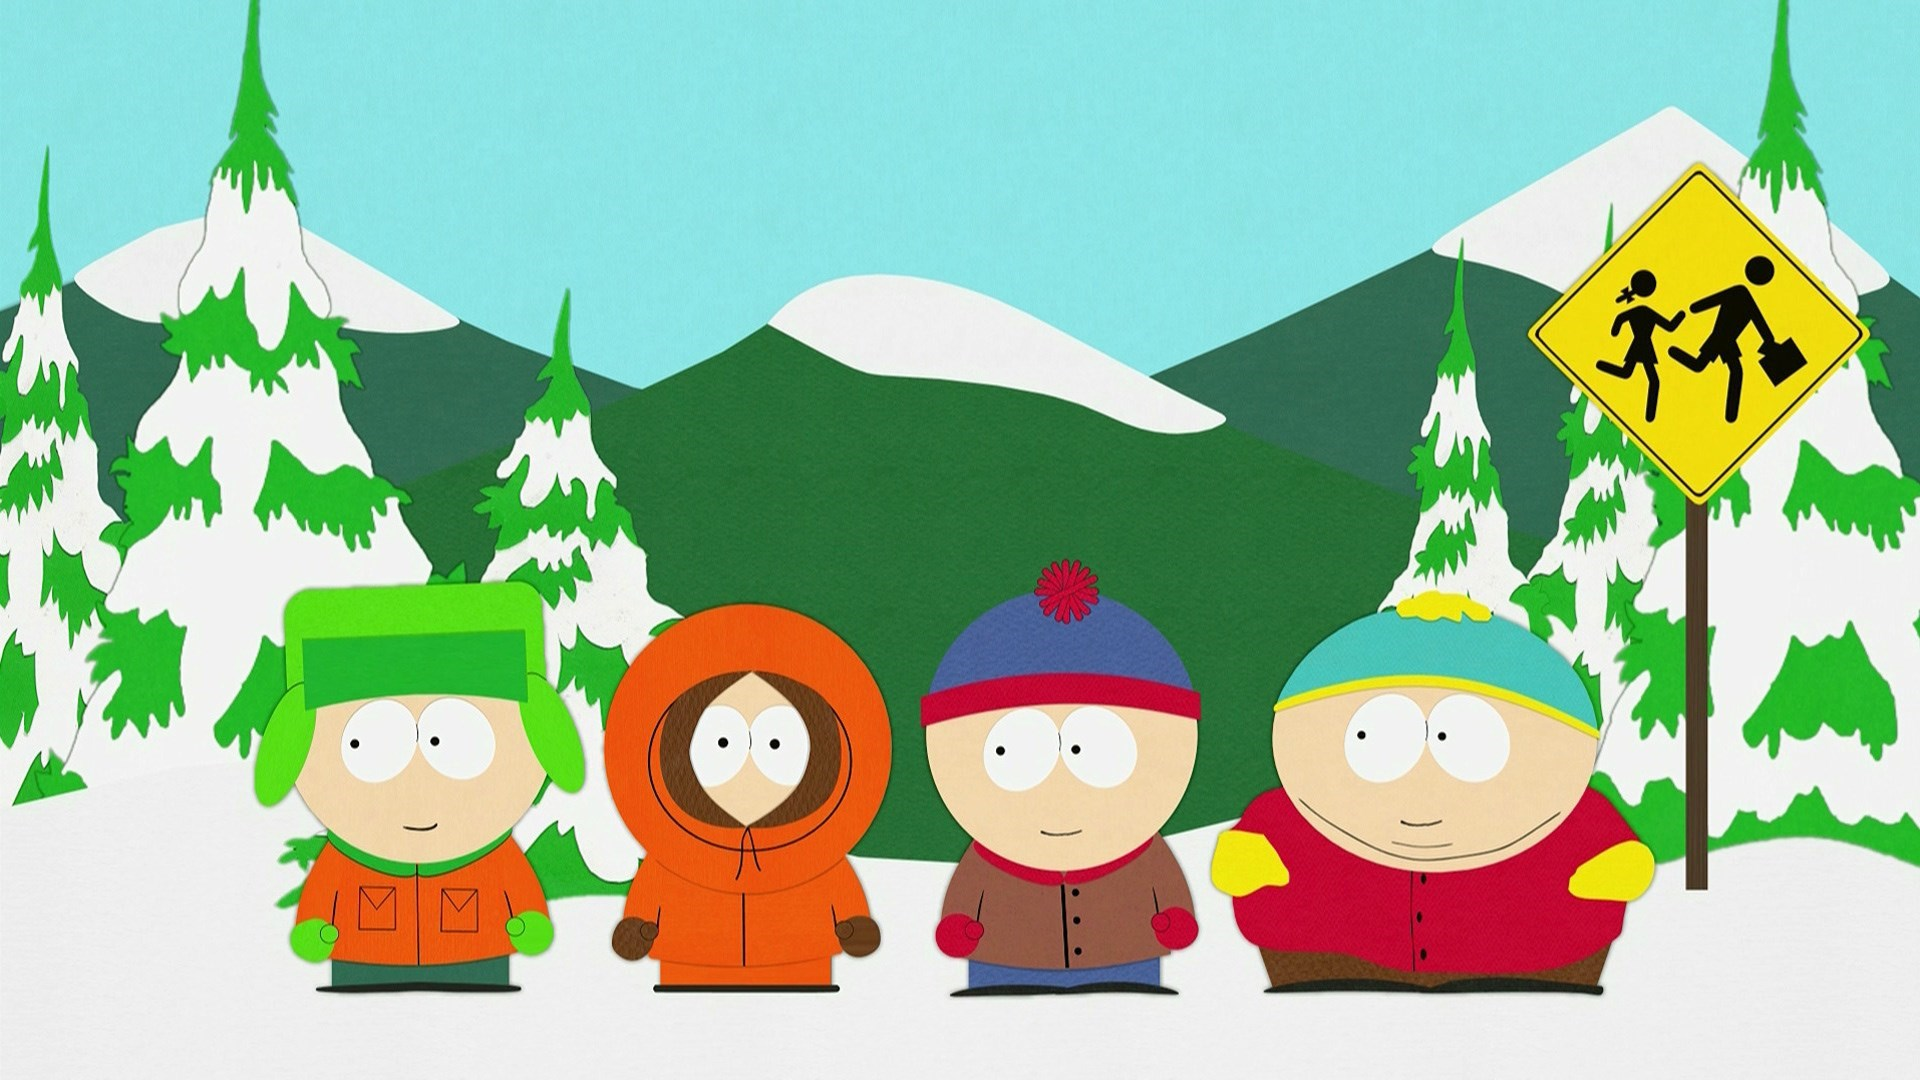 South park wallpapers kenny - wallpaper gallery